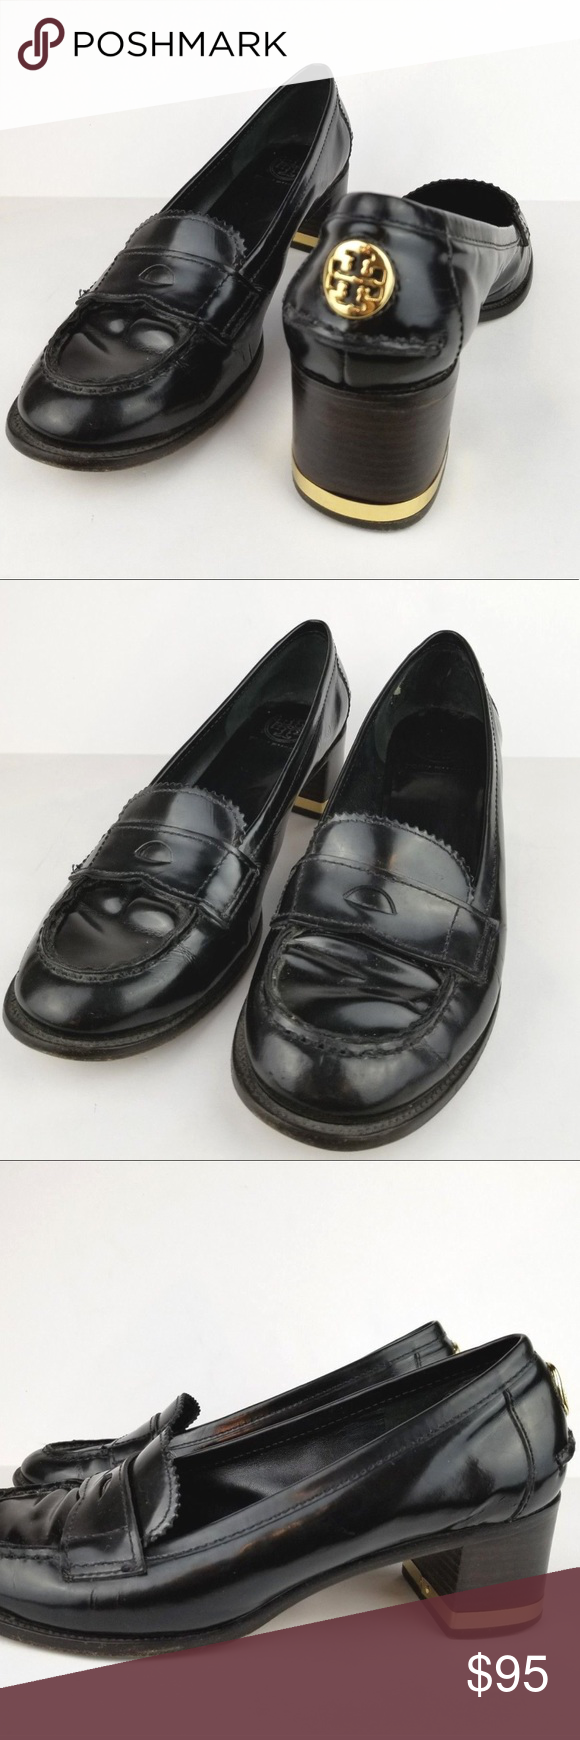 dddcacab54f Tory Burch penny loafers heels size 8 M Tory Burch. Good condition. Some  signs of wear. SIZE  8 M Black DETAILS  Patent leather.